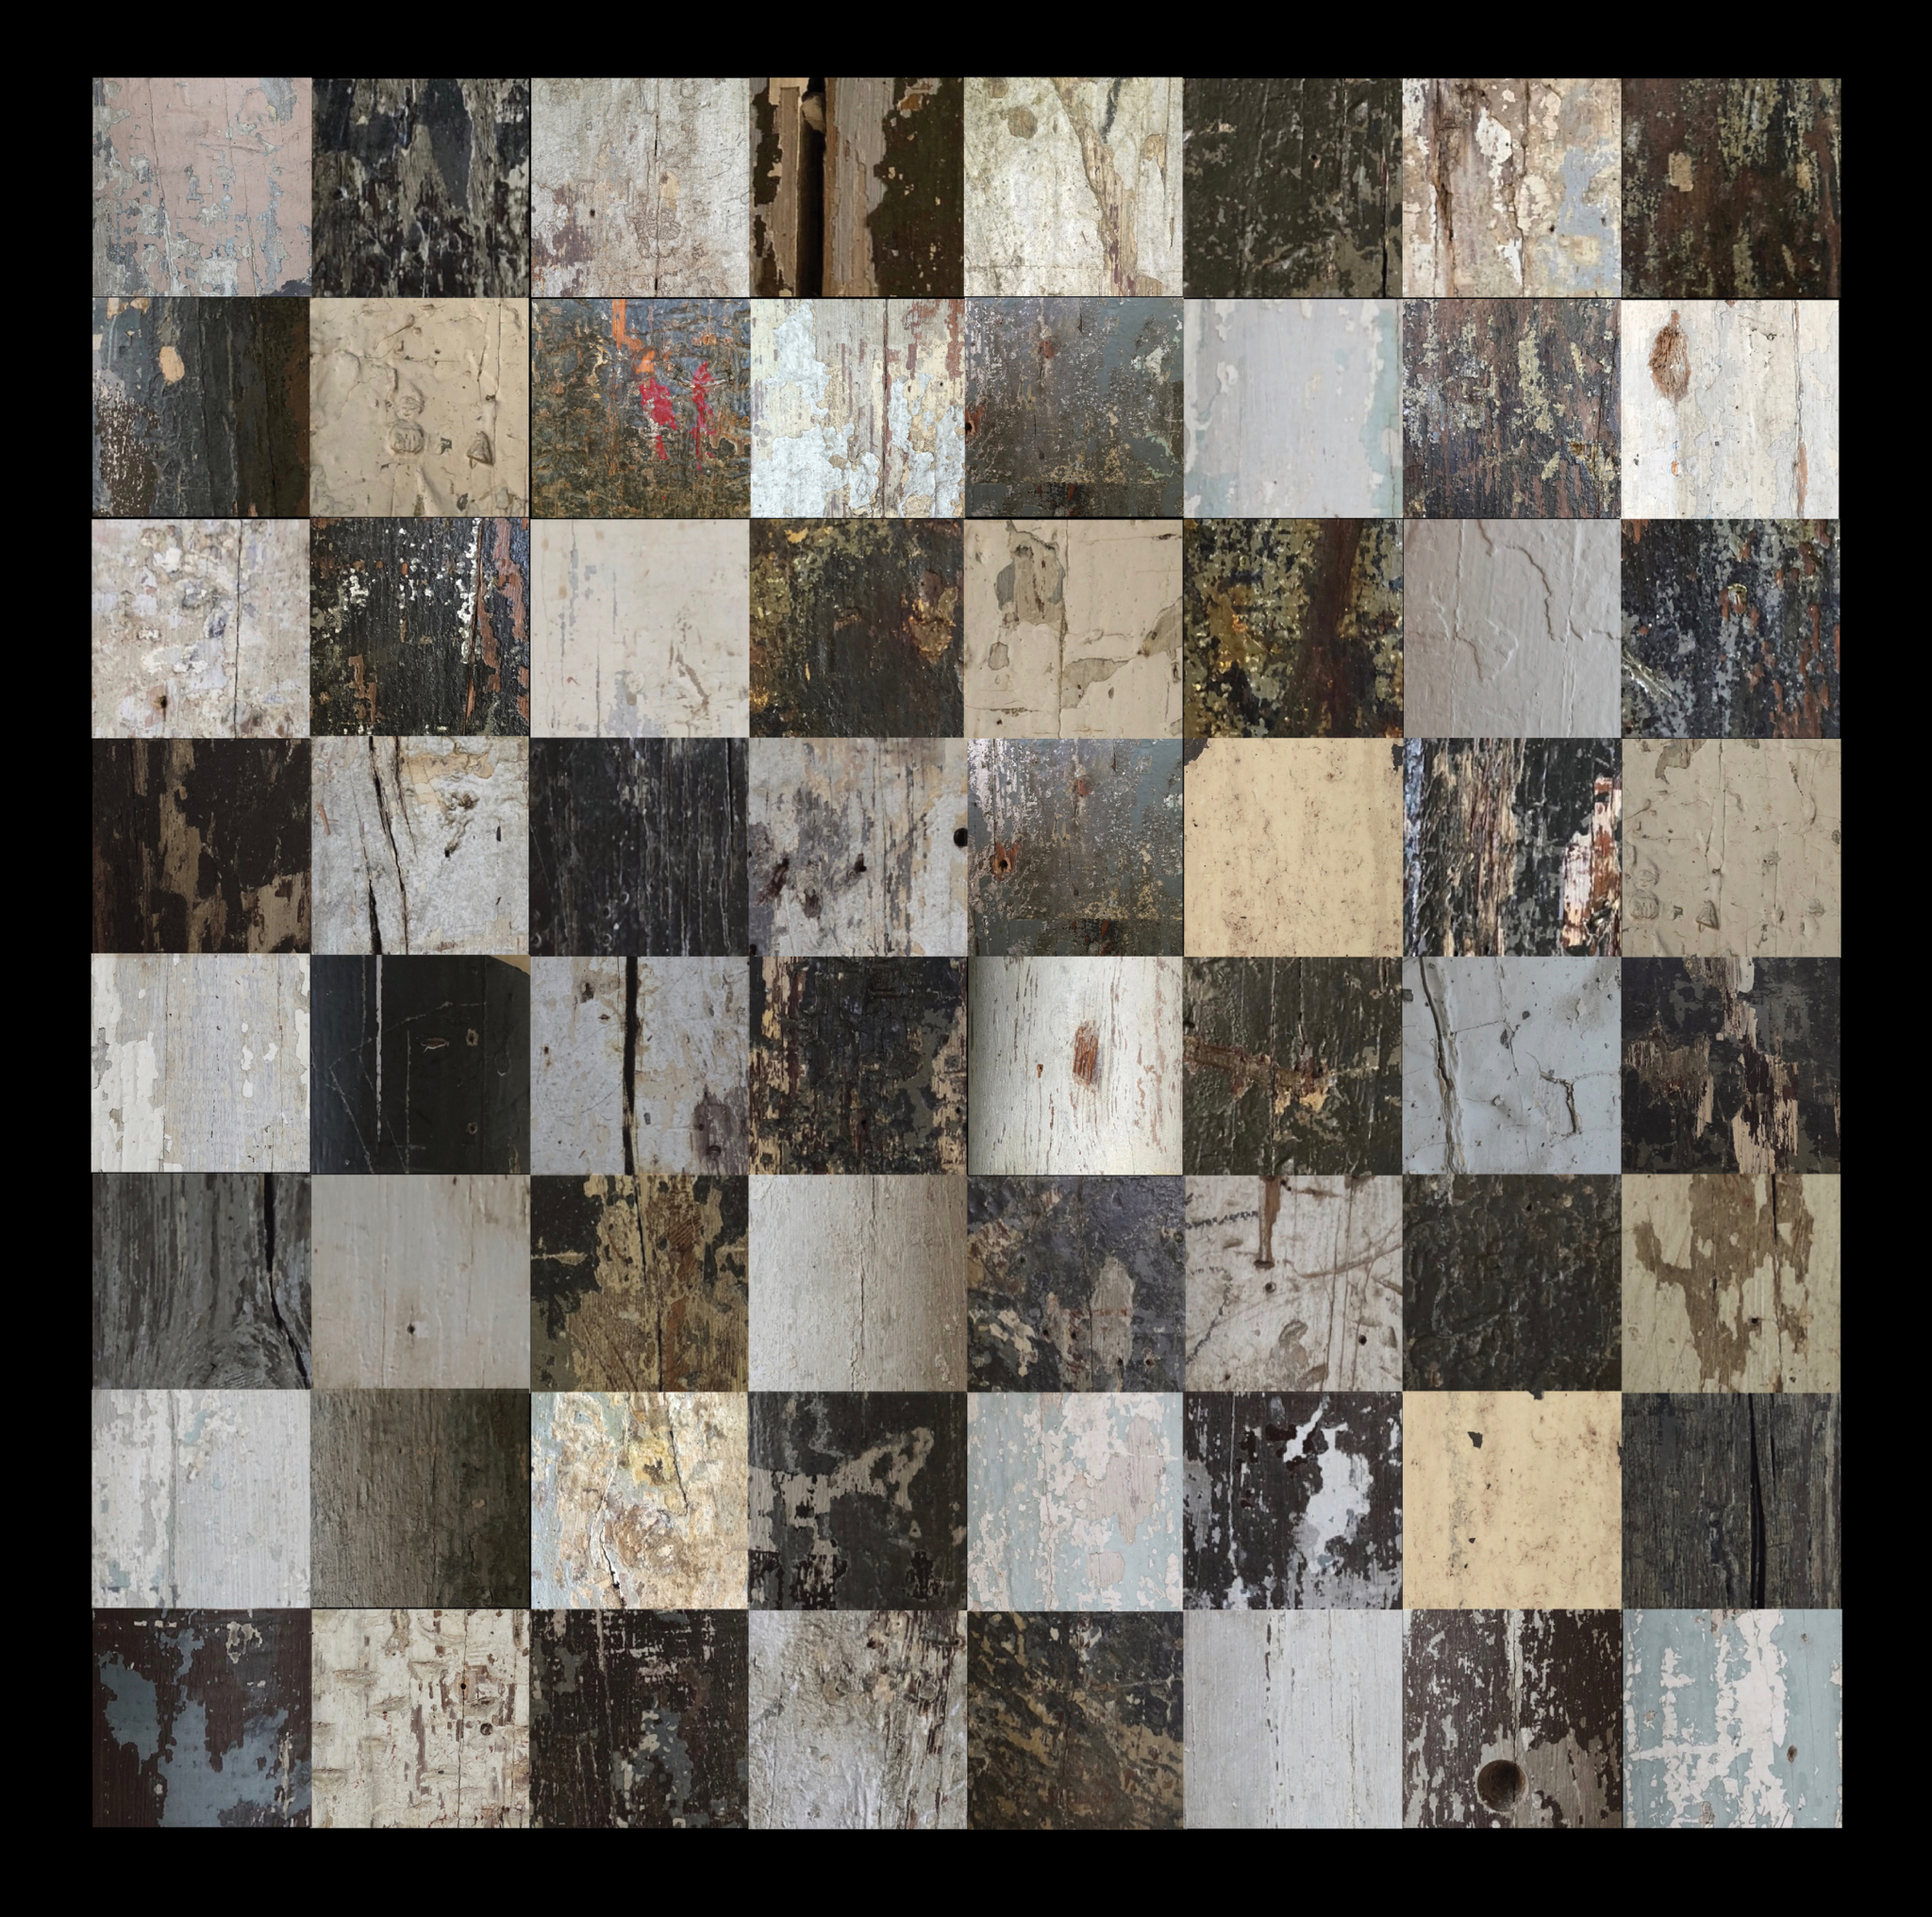 Chessboard (created with photos of Mass MoCA support columns). ©2018 Sean Walmsley